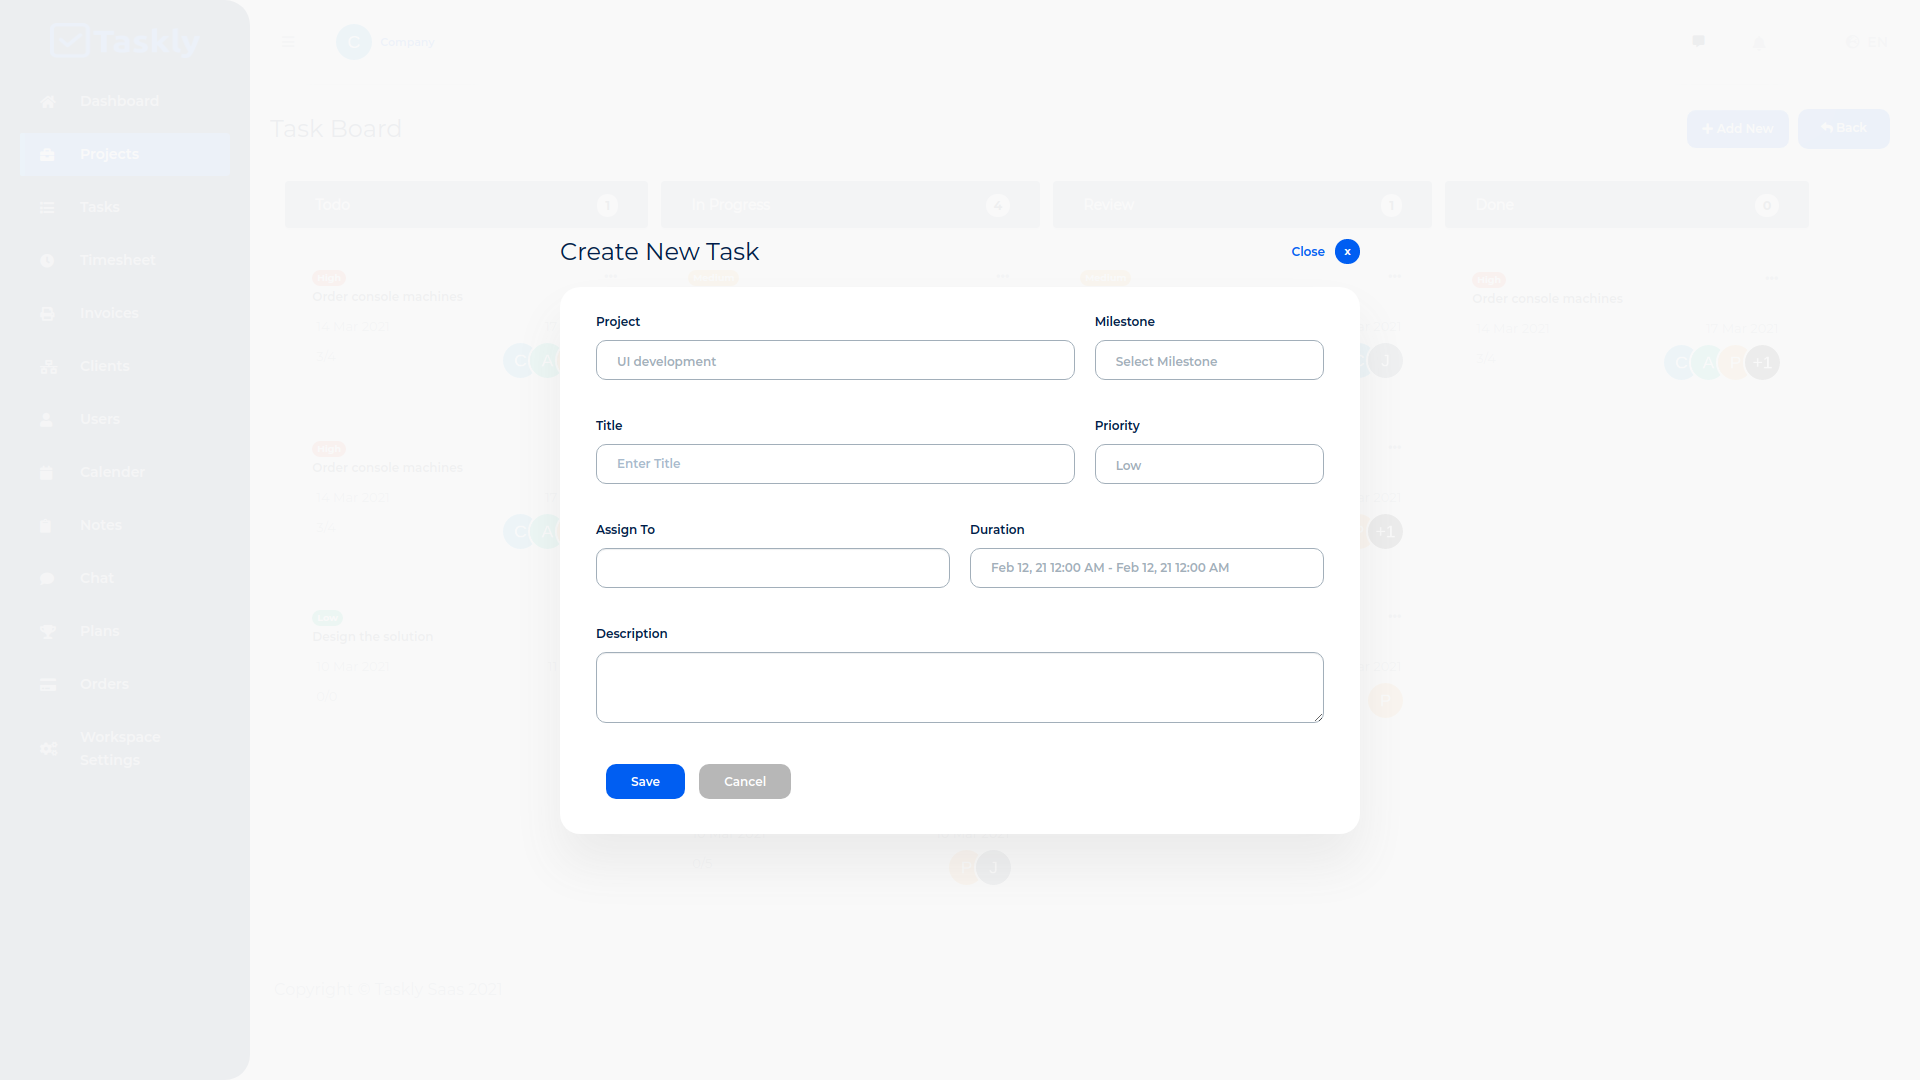 TASKLY SaaS – Project Management Tool - 10